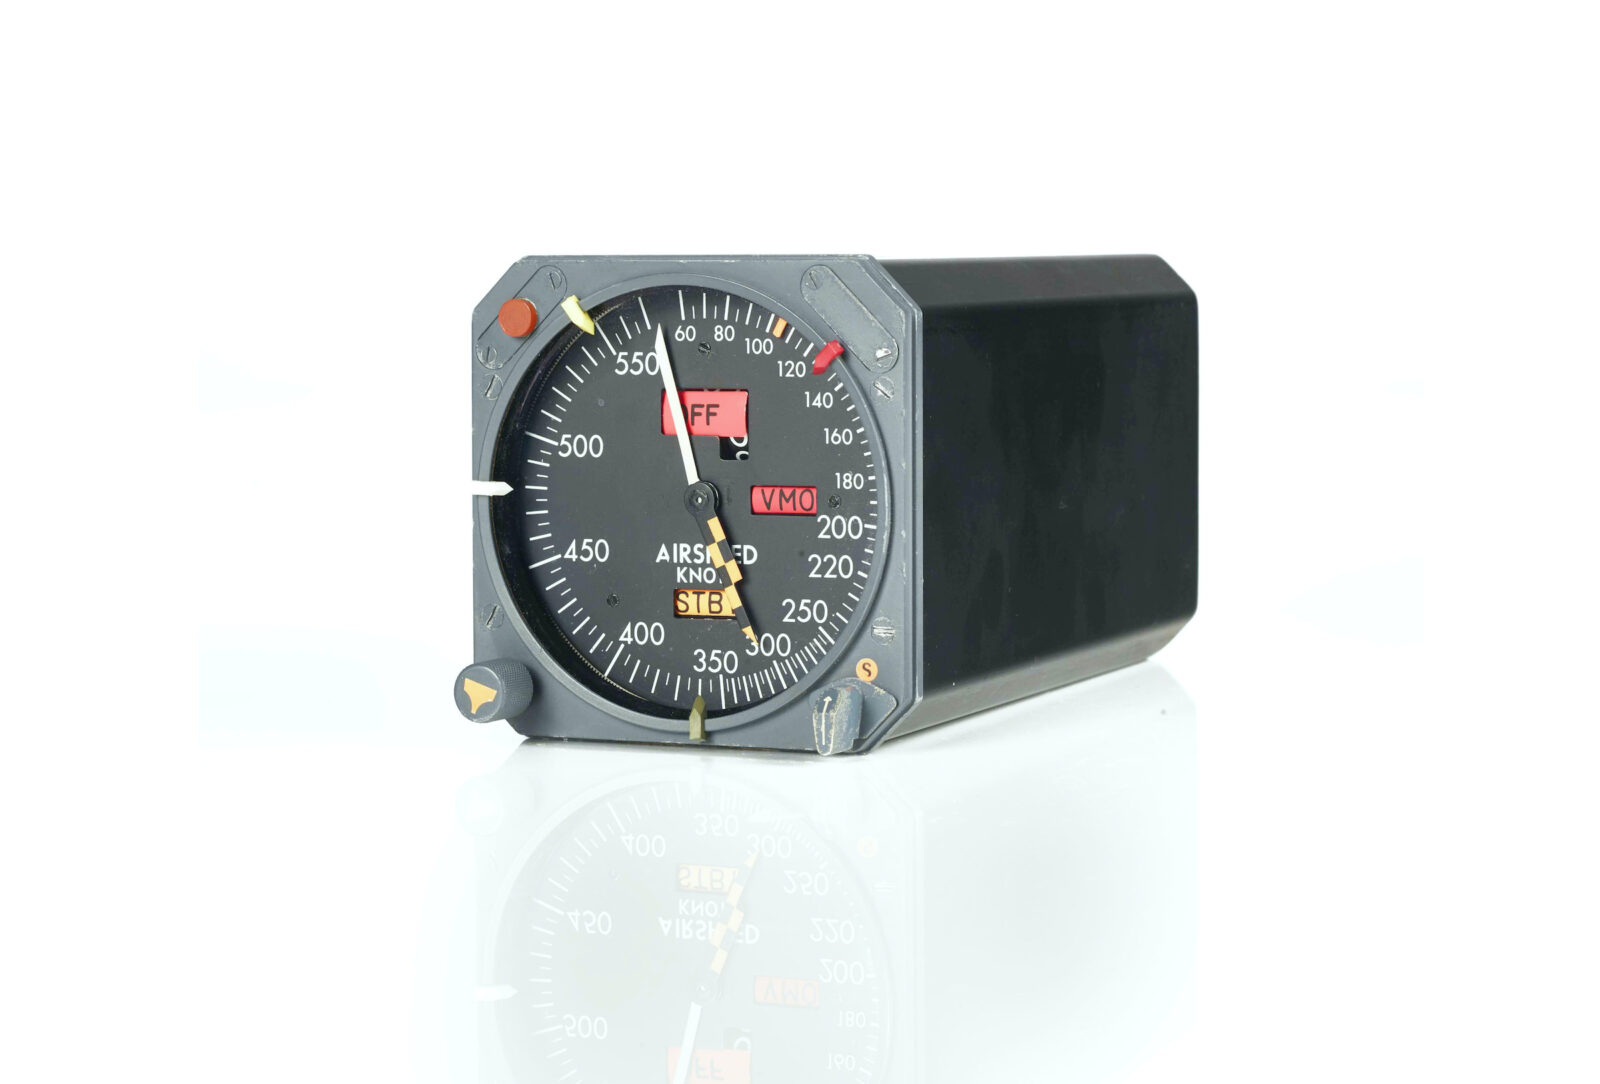 Concorde Air Speed Indicator